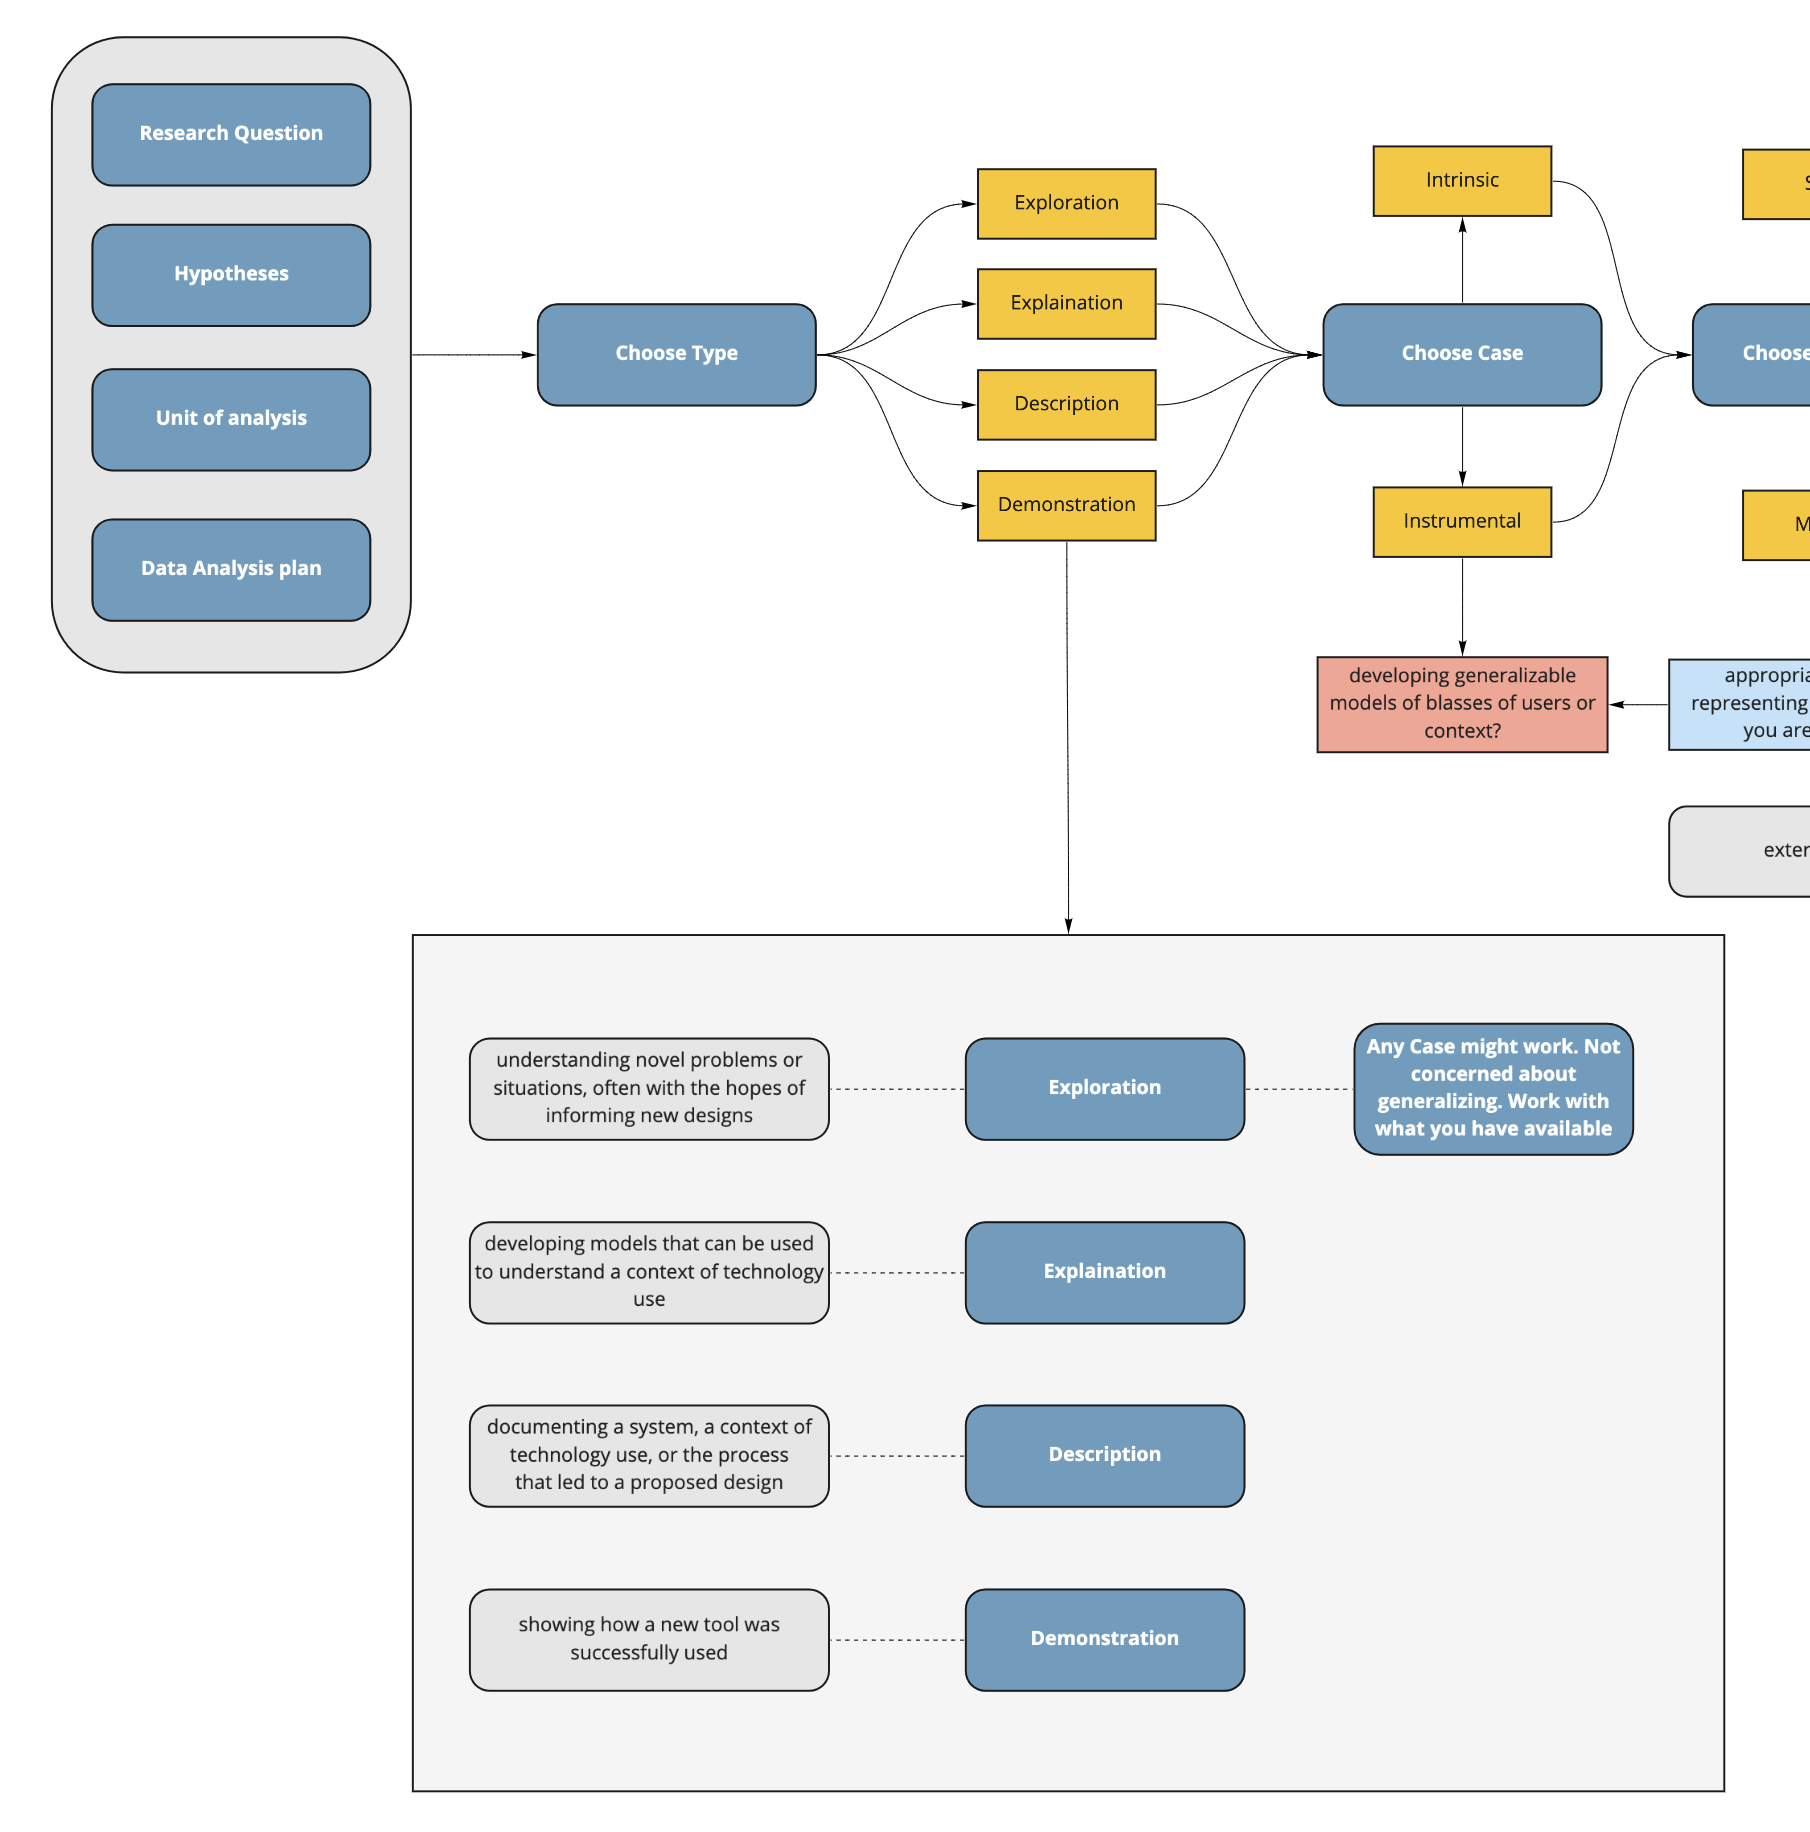 zoomed in view of the flow chart to look at what goes where